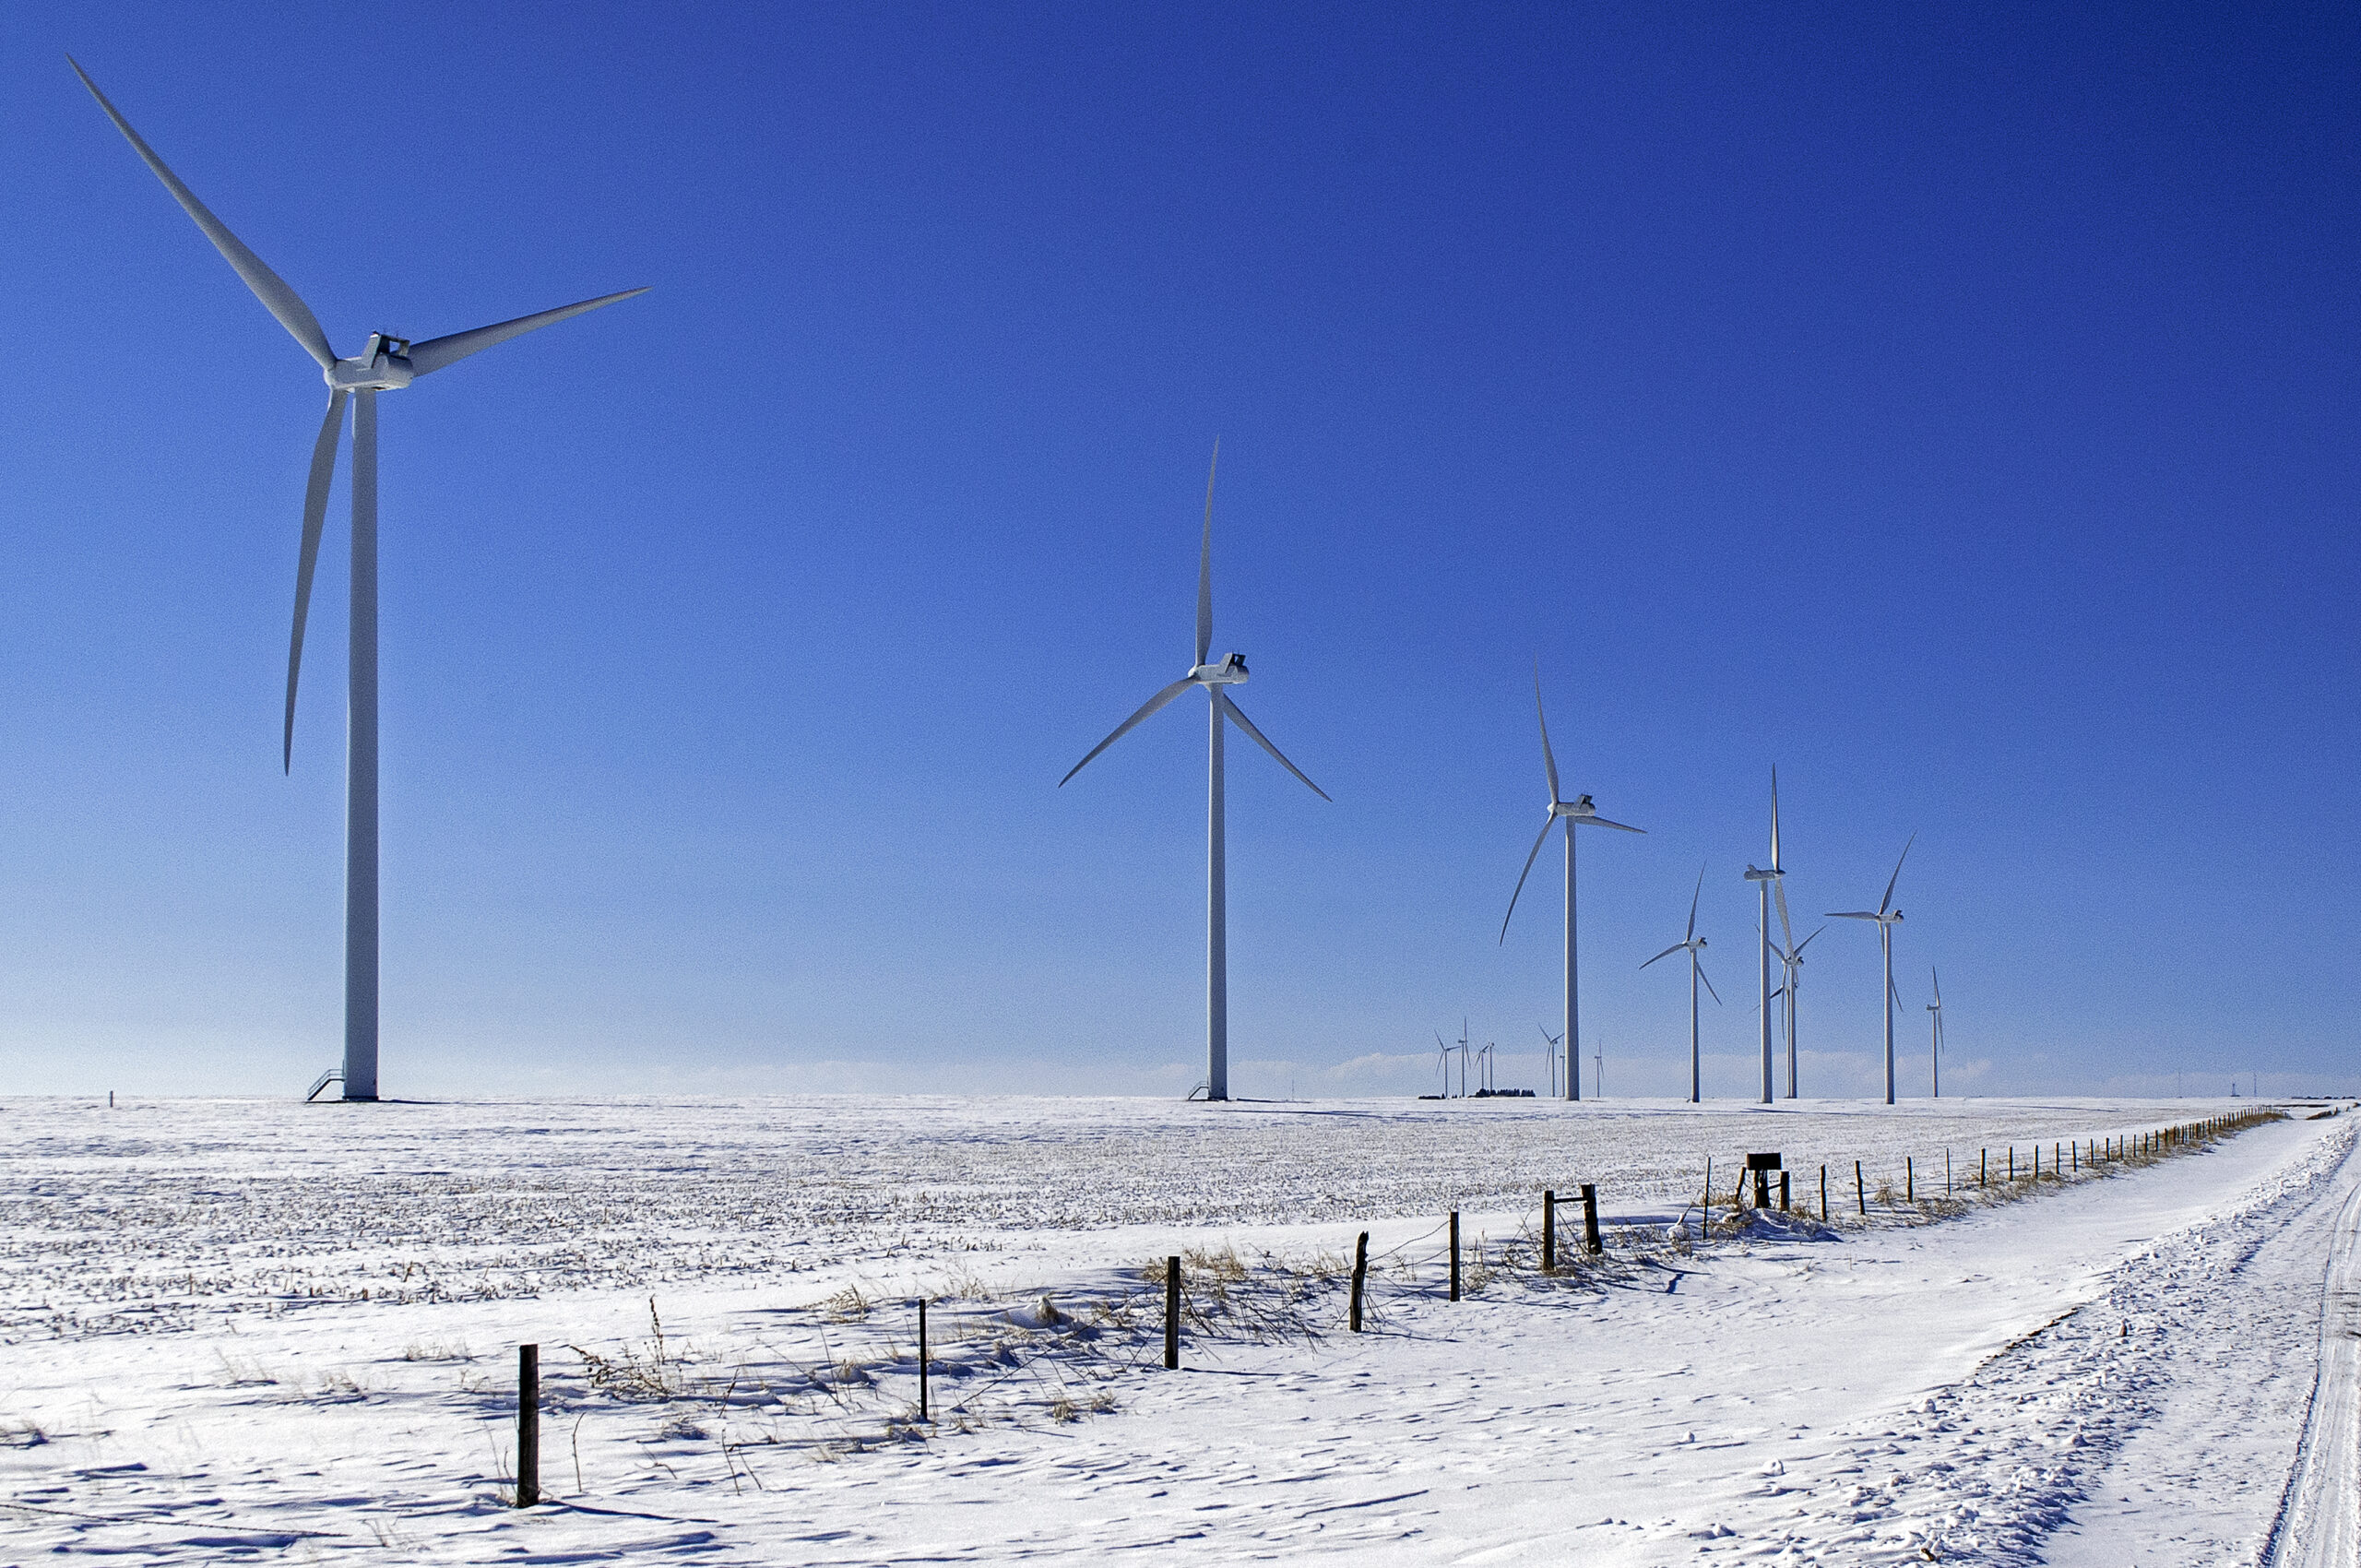 Clean Energy Employment Barely Creeps Up as Winter Sets In, November Data Shows